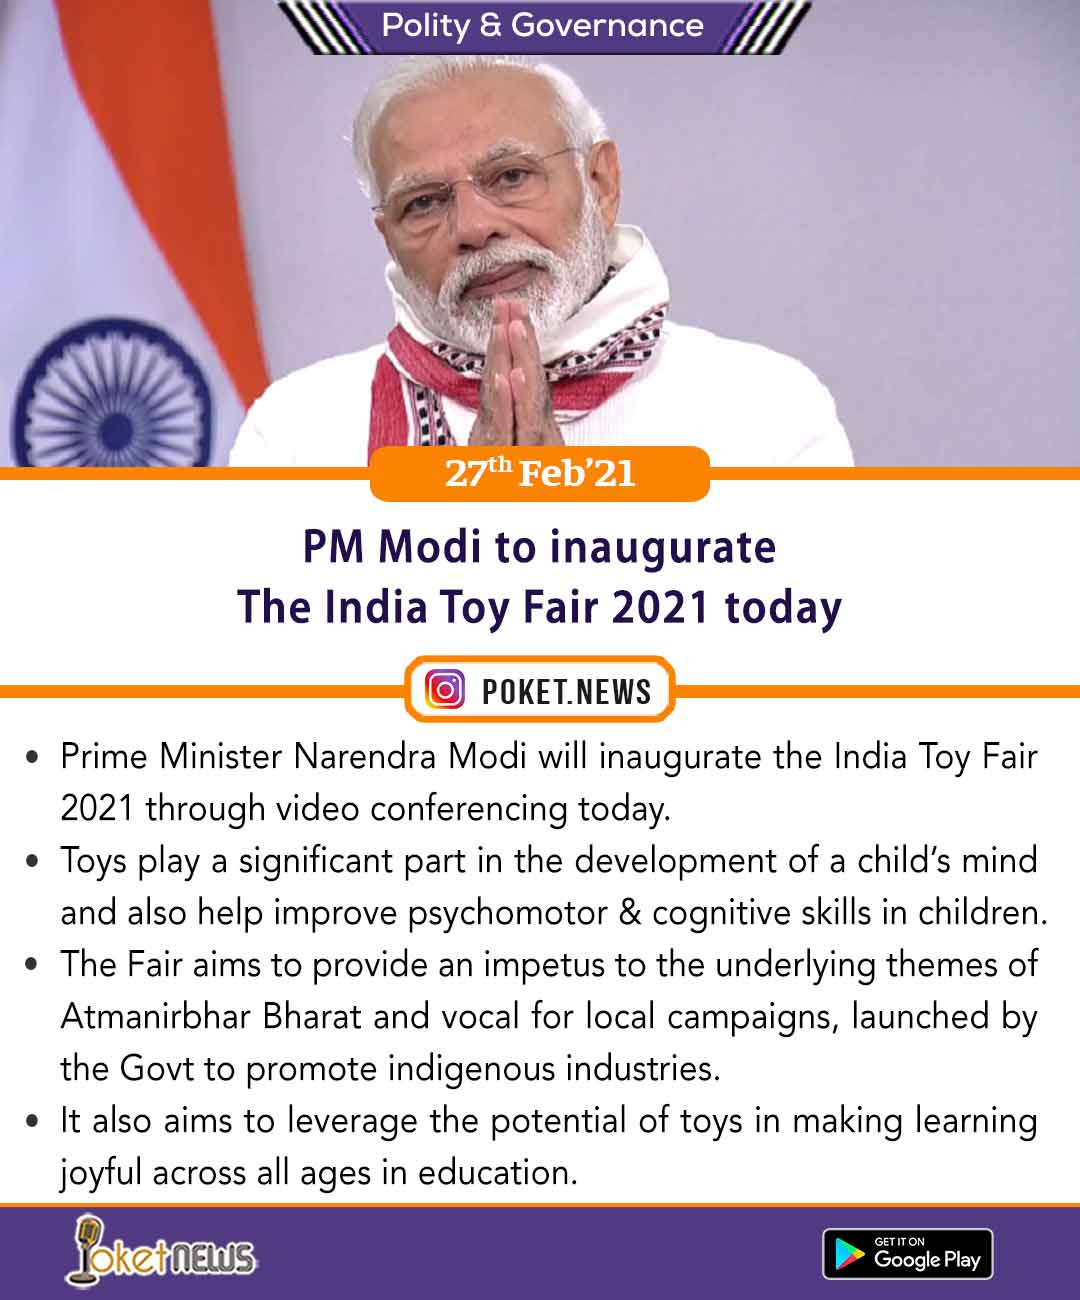 PM Modi to inaugurate The India Toy Fair 2021 today